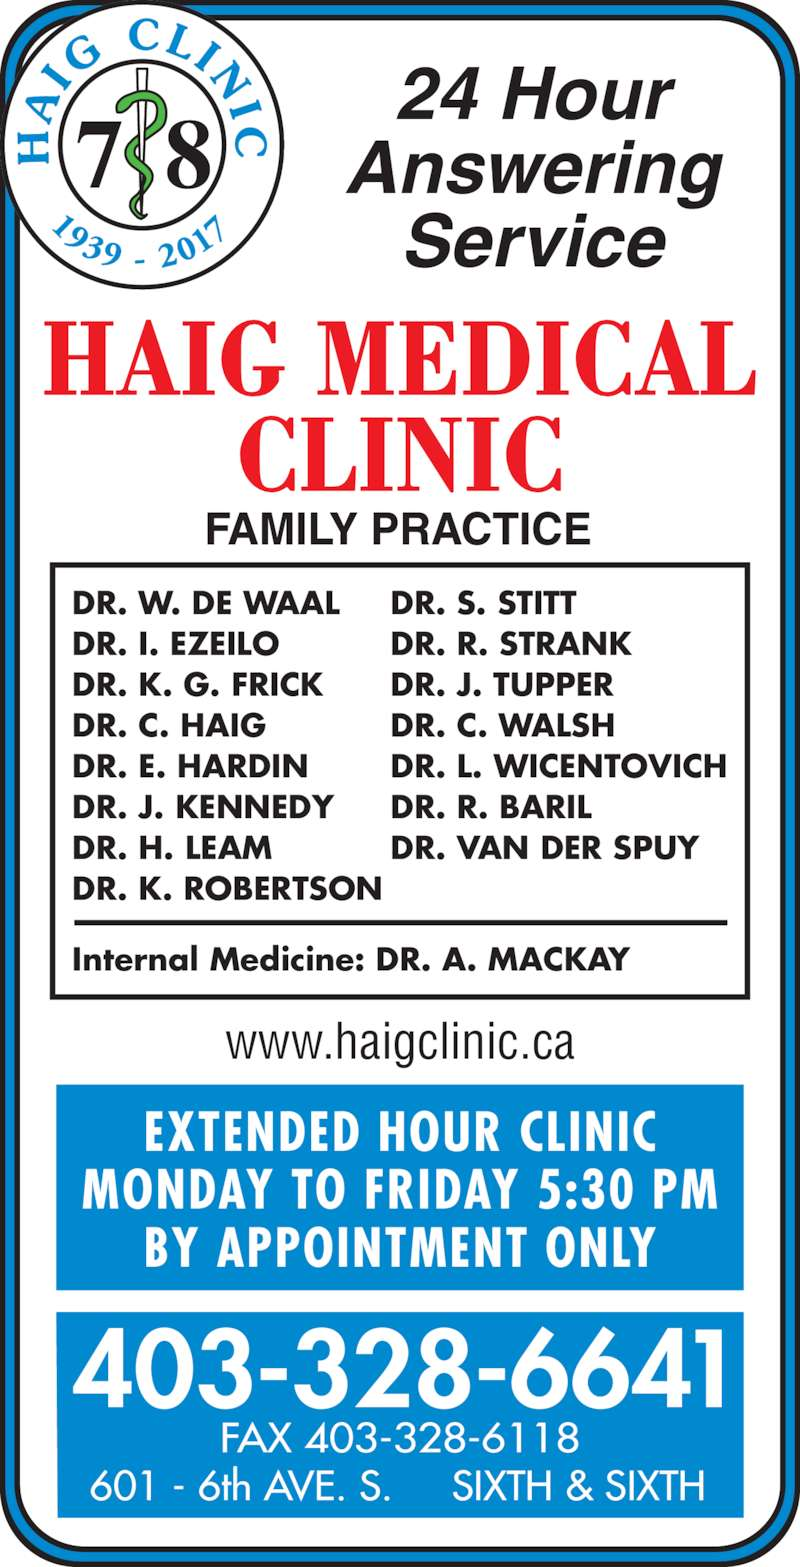 Chinook Primary Care Network (403-328-6641) - Display Ad - EXTENDED HOUR CLINIC MONDAY TO FRIDAY 5:30 PM BY APPOINTMENT ONLY www.haigclinic.ca 403-328-6641 FAX 403-328-6118 IG  CLIN I C 601 - 6th AVE. S.     SIXTH & SIXTH 24 Hour Answering Service DR. W. DE WAAL DR. I. EZEILO DR. K. G. FRICK DR. C. HAIG DR. E. HARDIN DR. J. KENNEDY DR. H. LEAM DR. K. ROBERTSON Internal Medicine: DR. A. MACKAY DR. S. STITT DR. R. STRANK DR. J. TUPPER DR. C. WALSH DR. L. WICENTOVICH DR. R. BARIL DR. VAN DER SPUY 7 8 1939 -  201